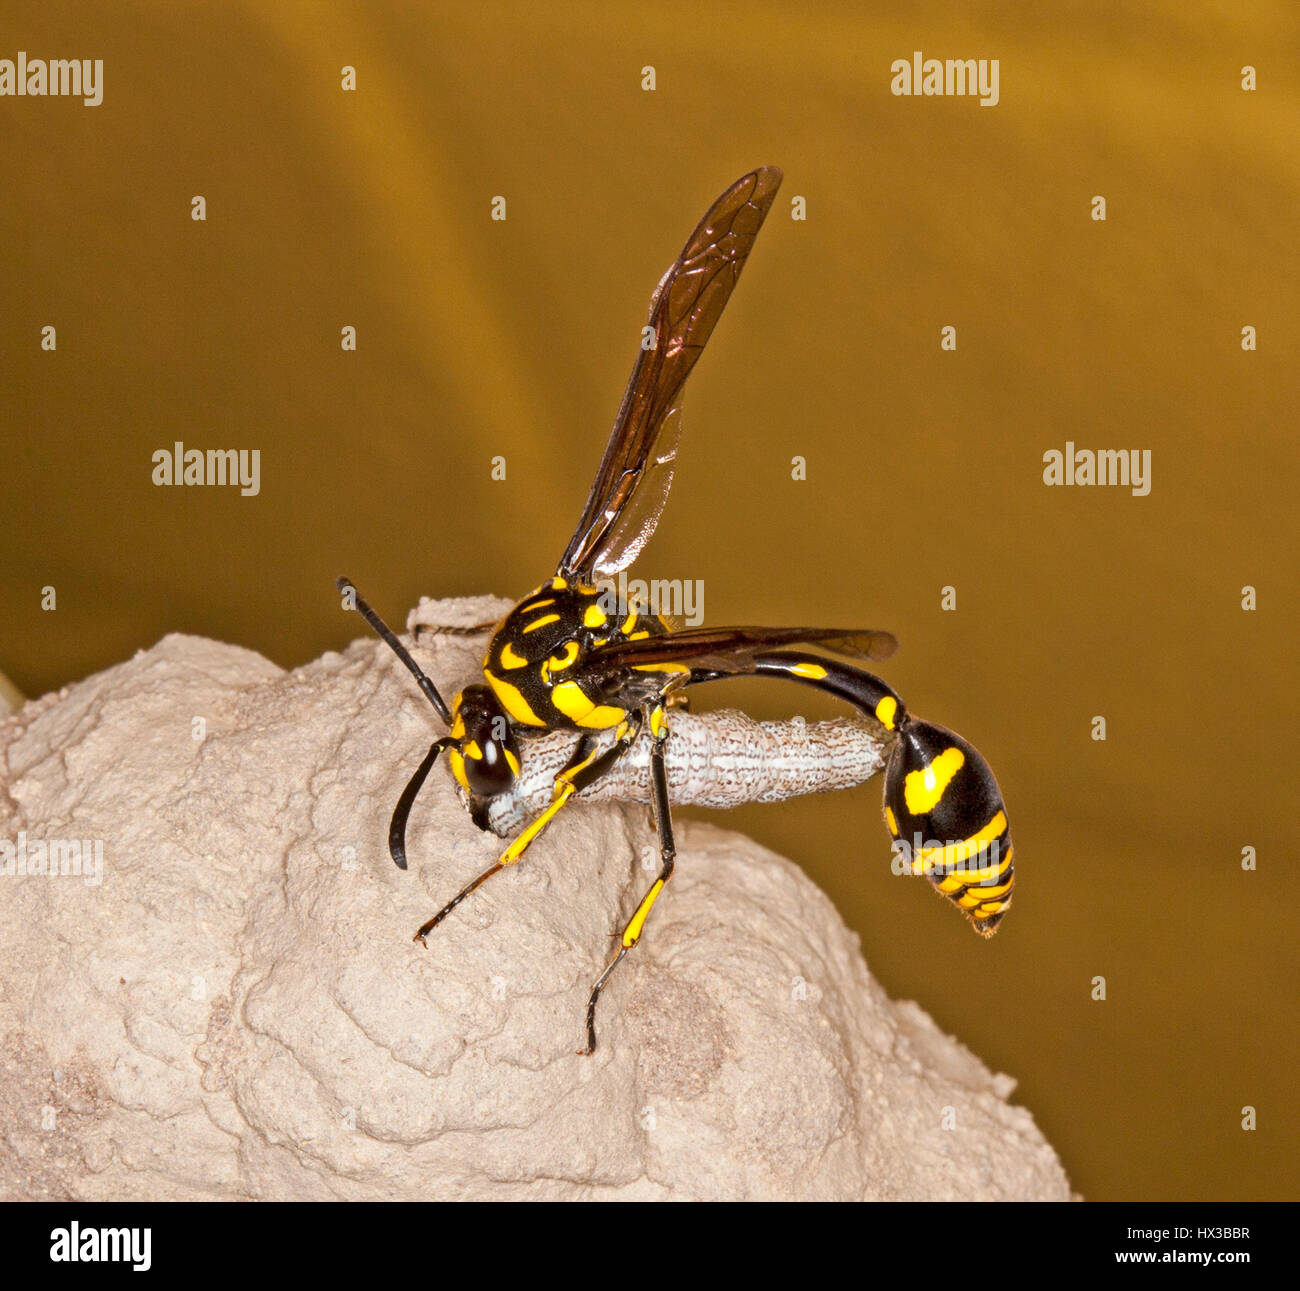 Black Flower Wasp From Australia: Unusual Image Of Black& Yellow Australian Potter Wasp